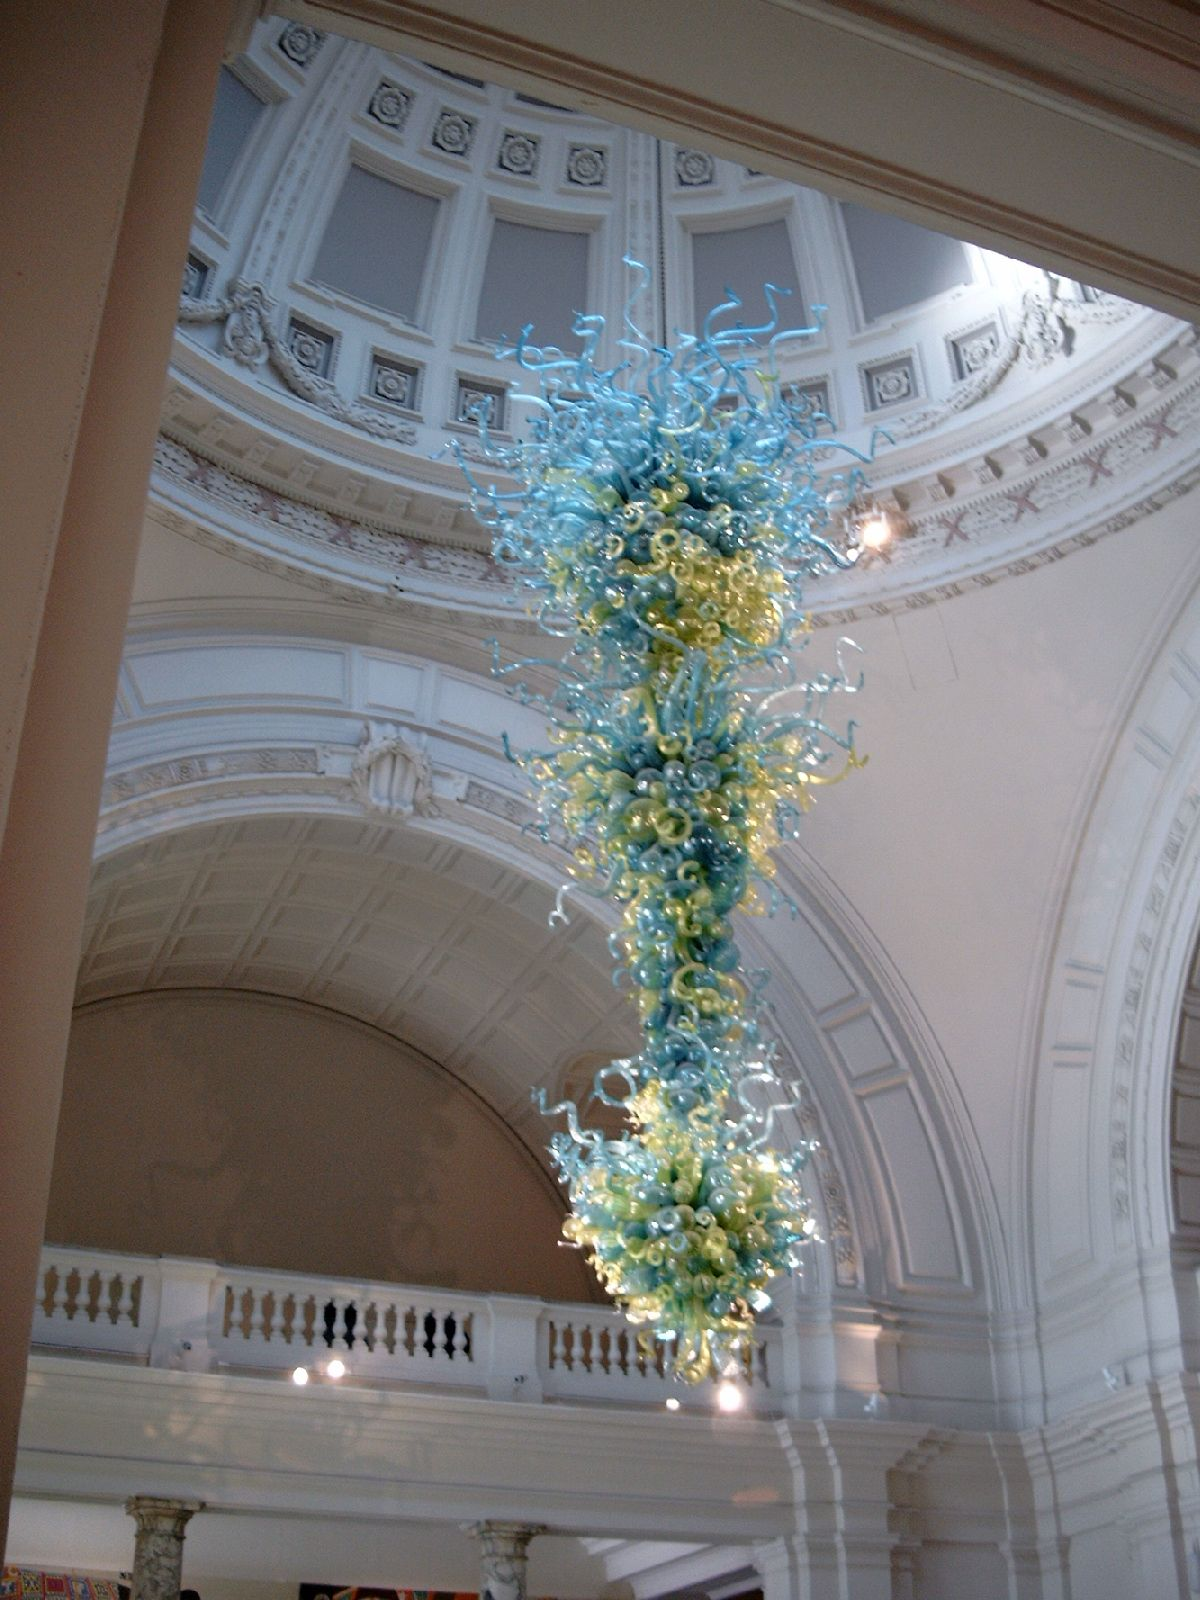 Filechandelier by dale chihuly victoria and albert museum filechandelier by dale chihuly victoria and albert museum londong arubaitofo Images